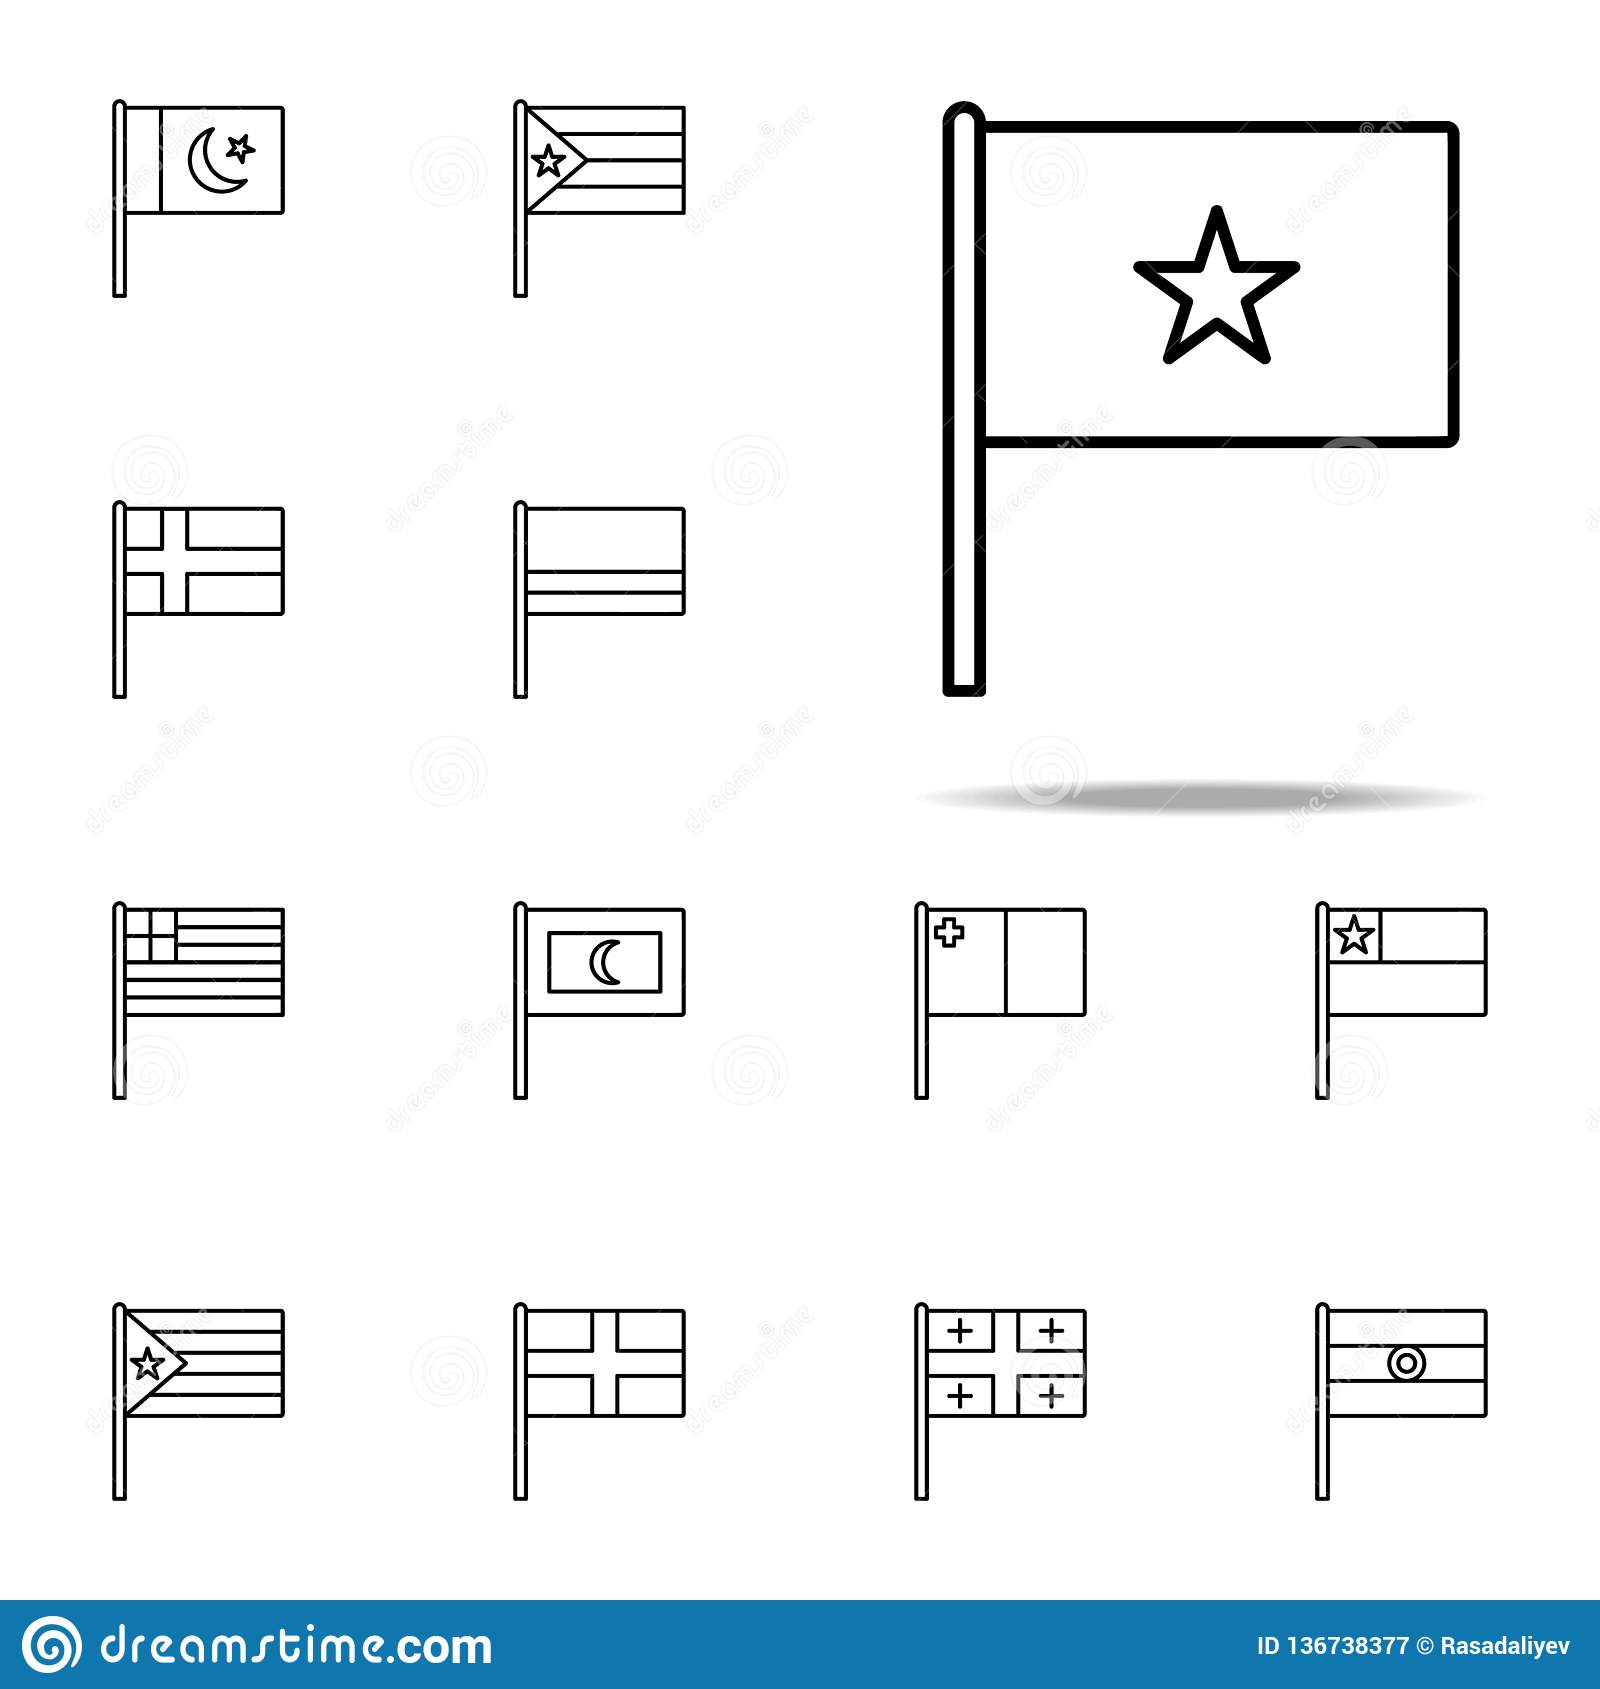 Vietnam icon. flags icons universal set for web and mobile